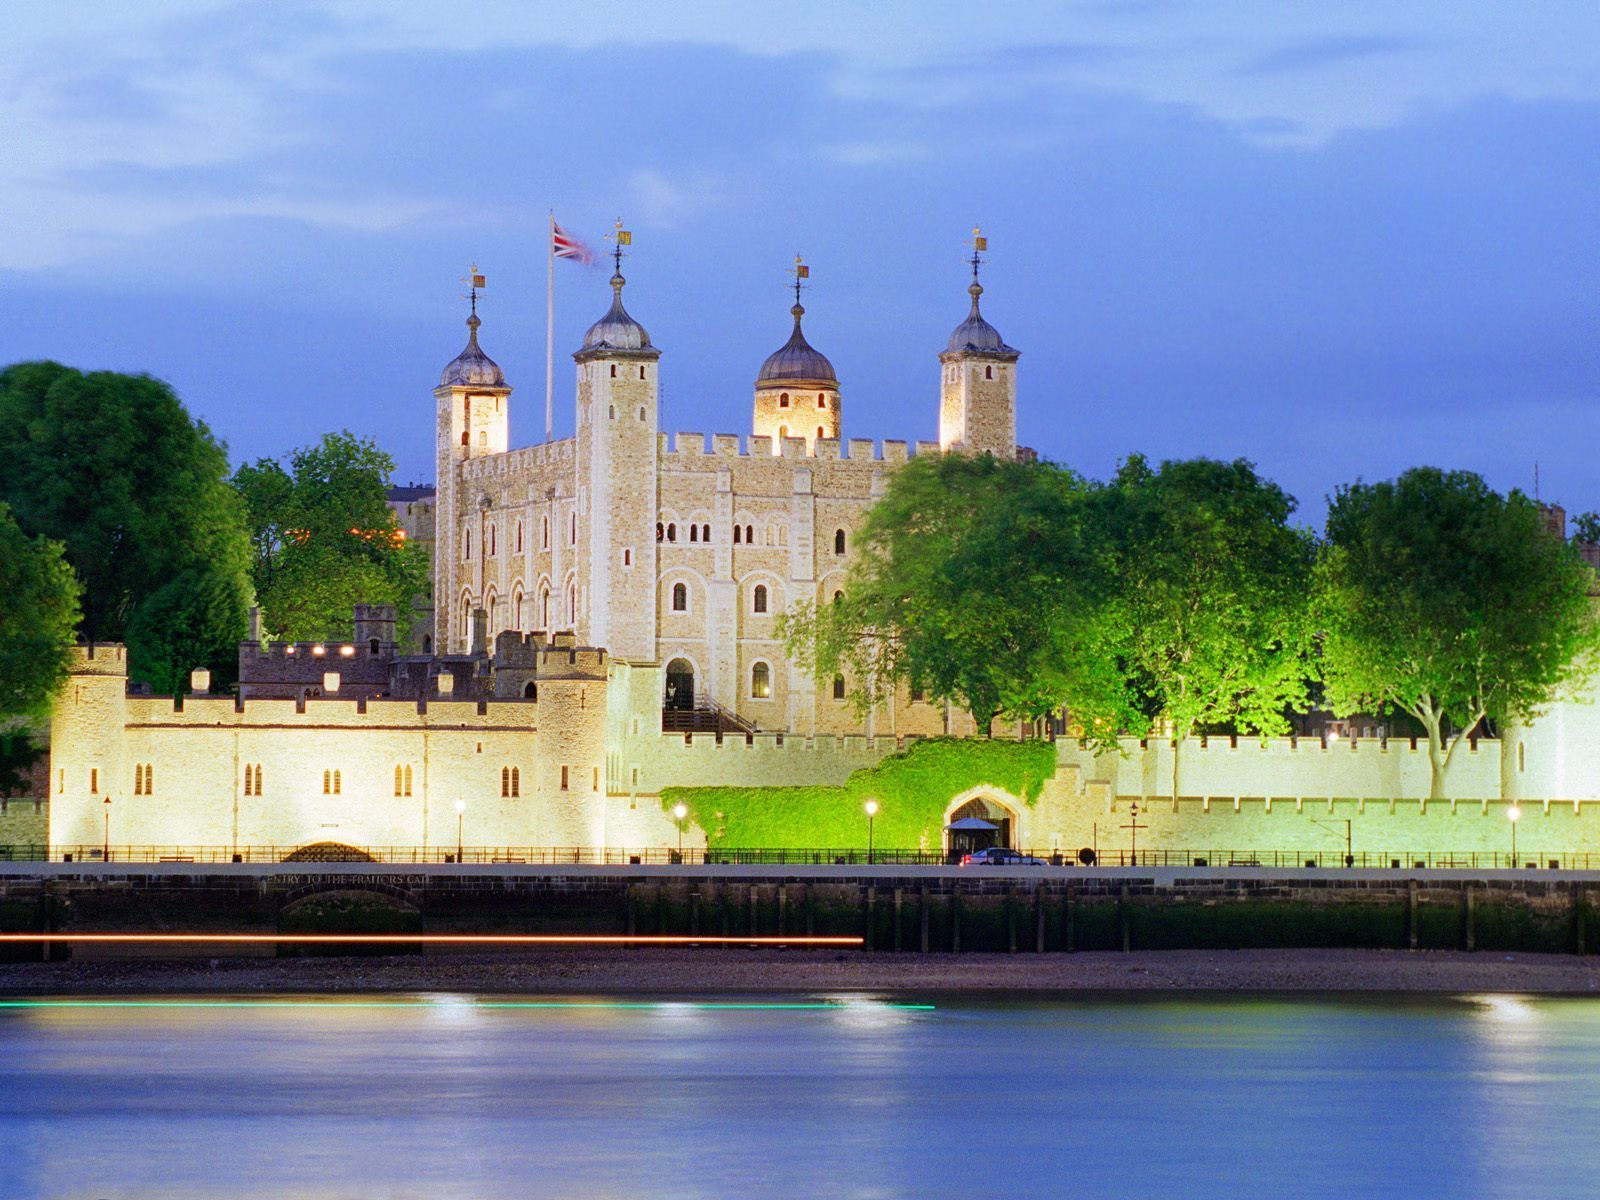 Known places: Tower Of London, England, desktop wallpaper nr. 33524